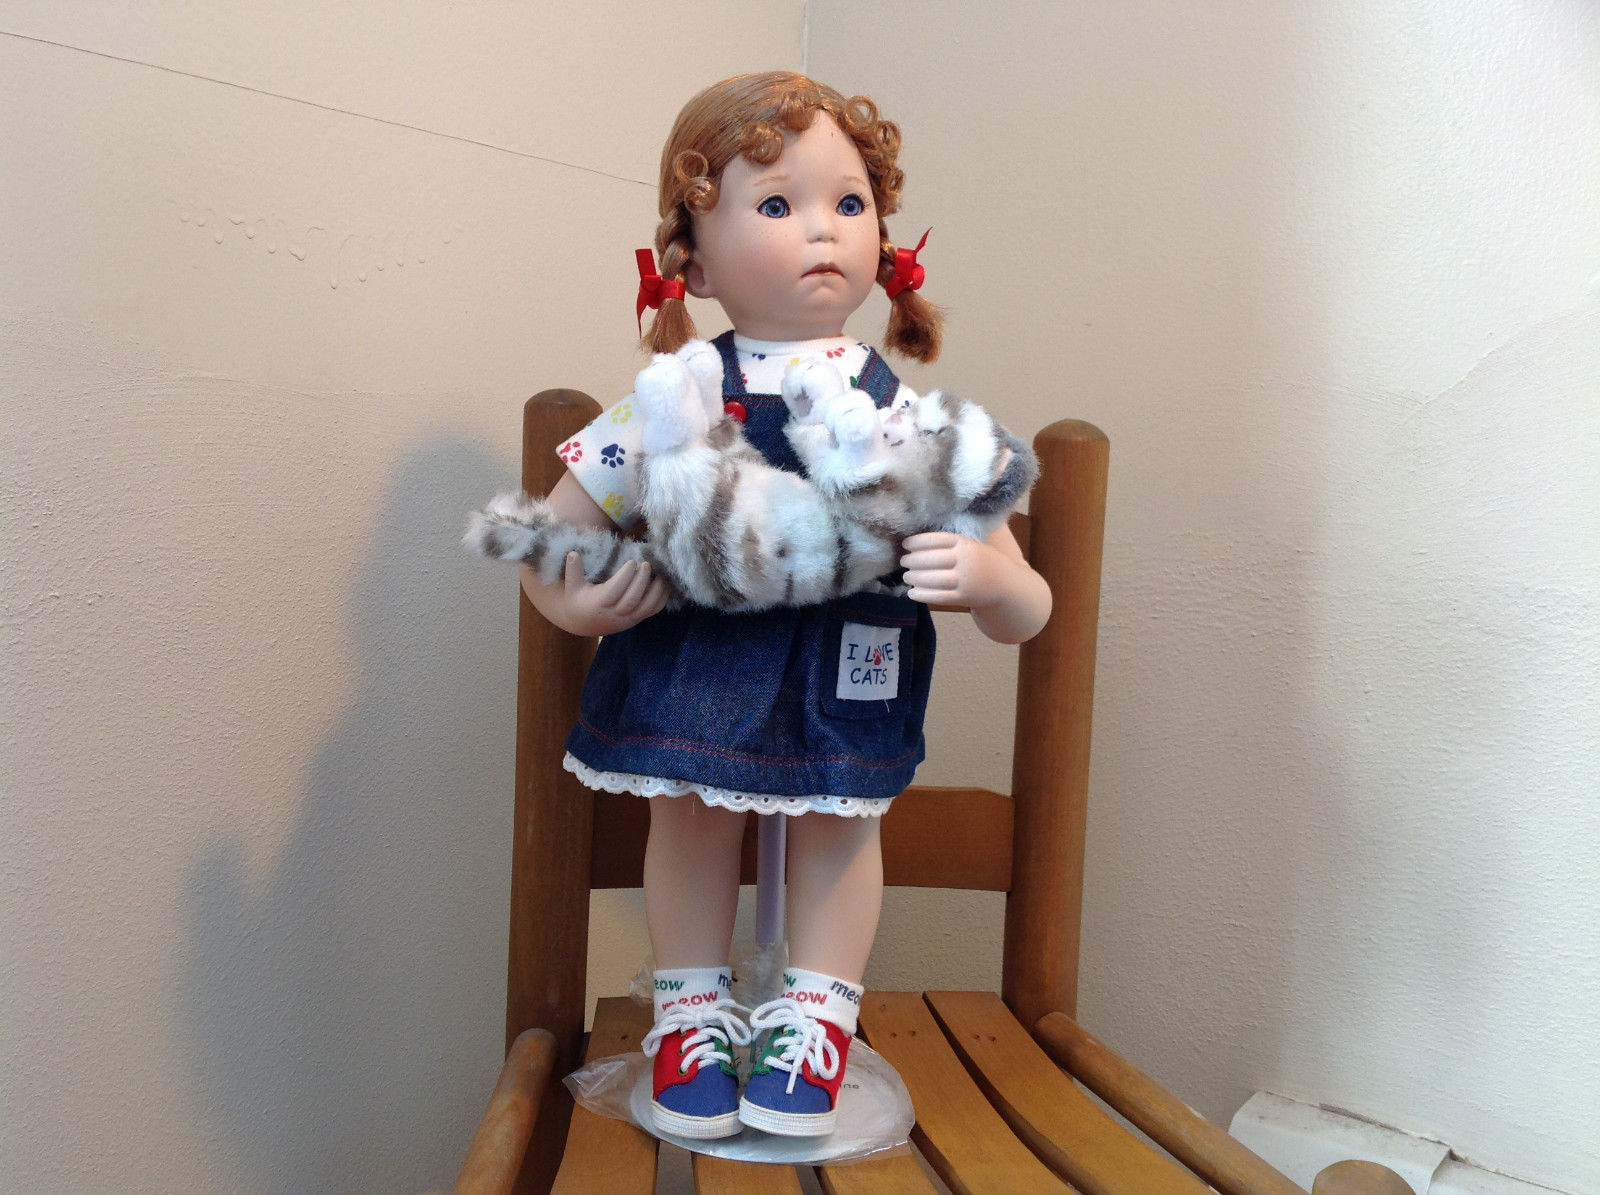 Can I Keep Her? Doll by Donna RuBert Porcelain 16 Inches Tall on Stand w cat